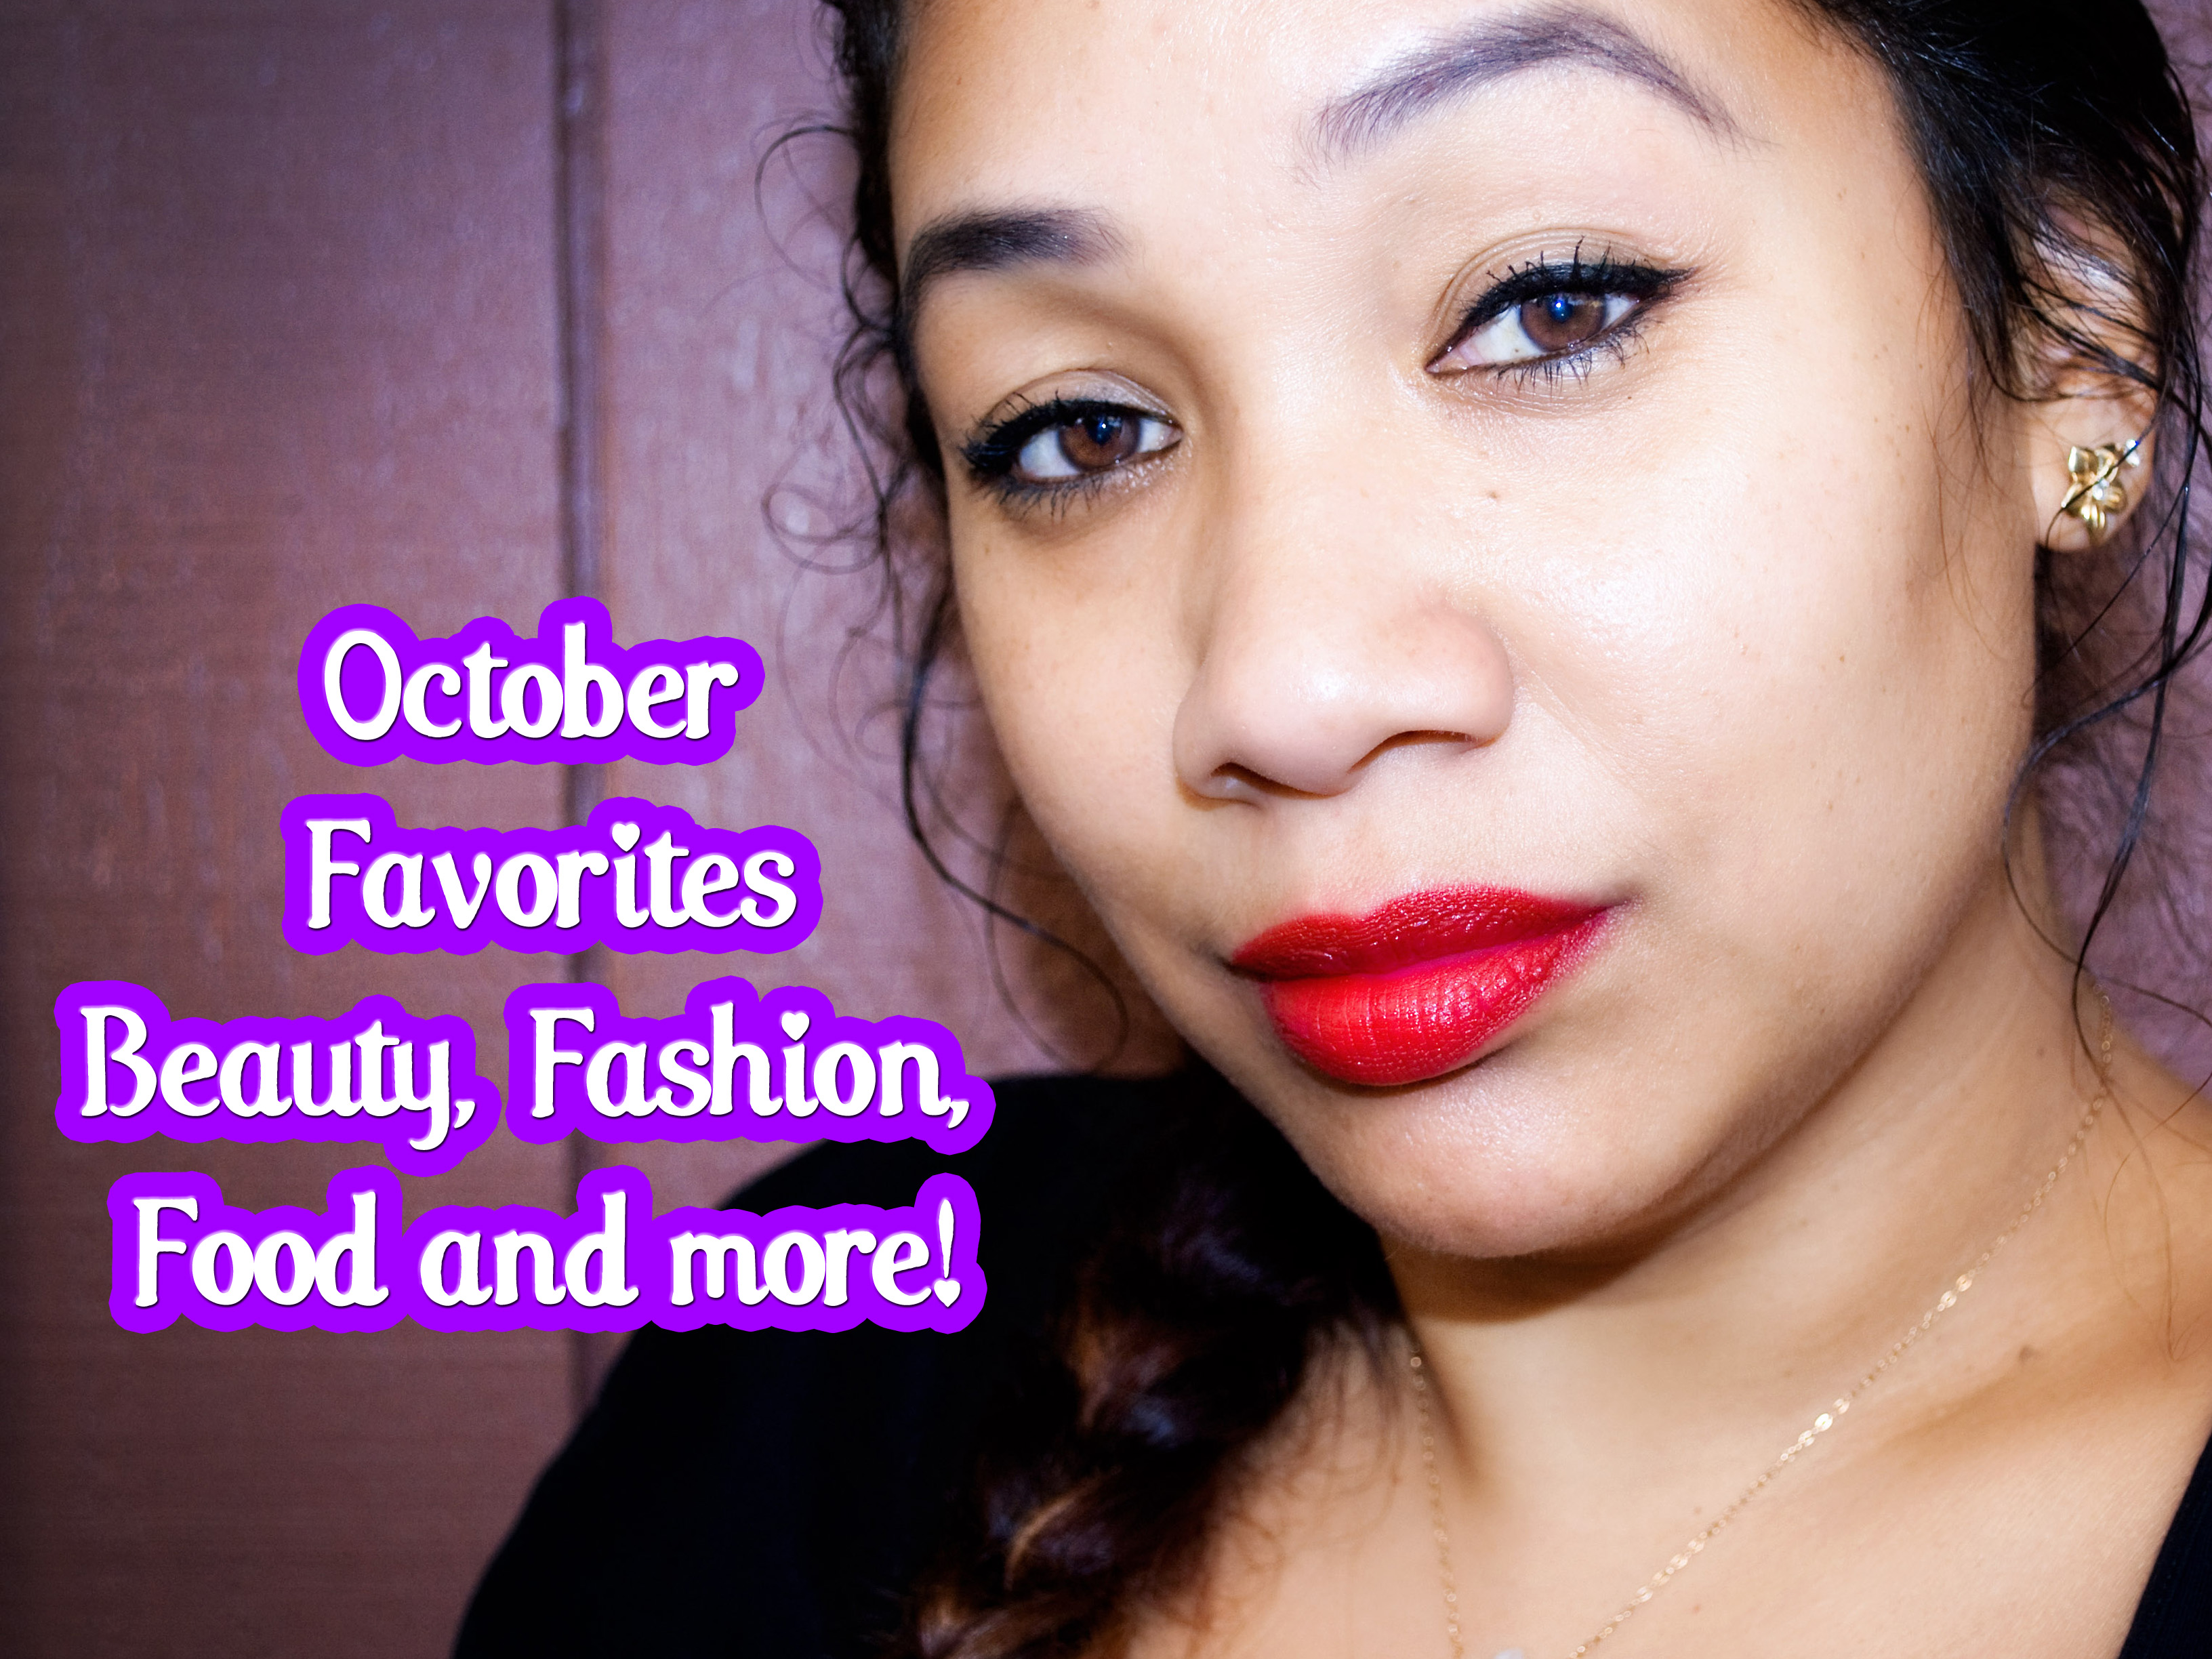 October Favorites Including Food, Beauty, Skincare and Style